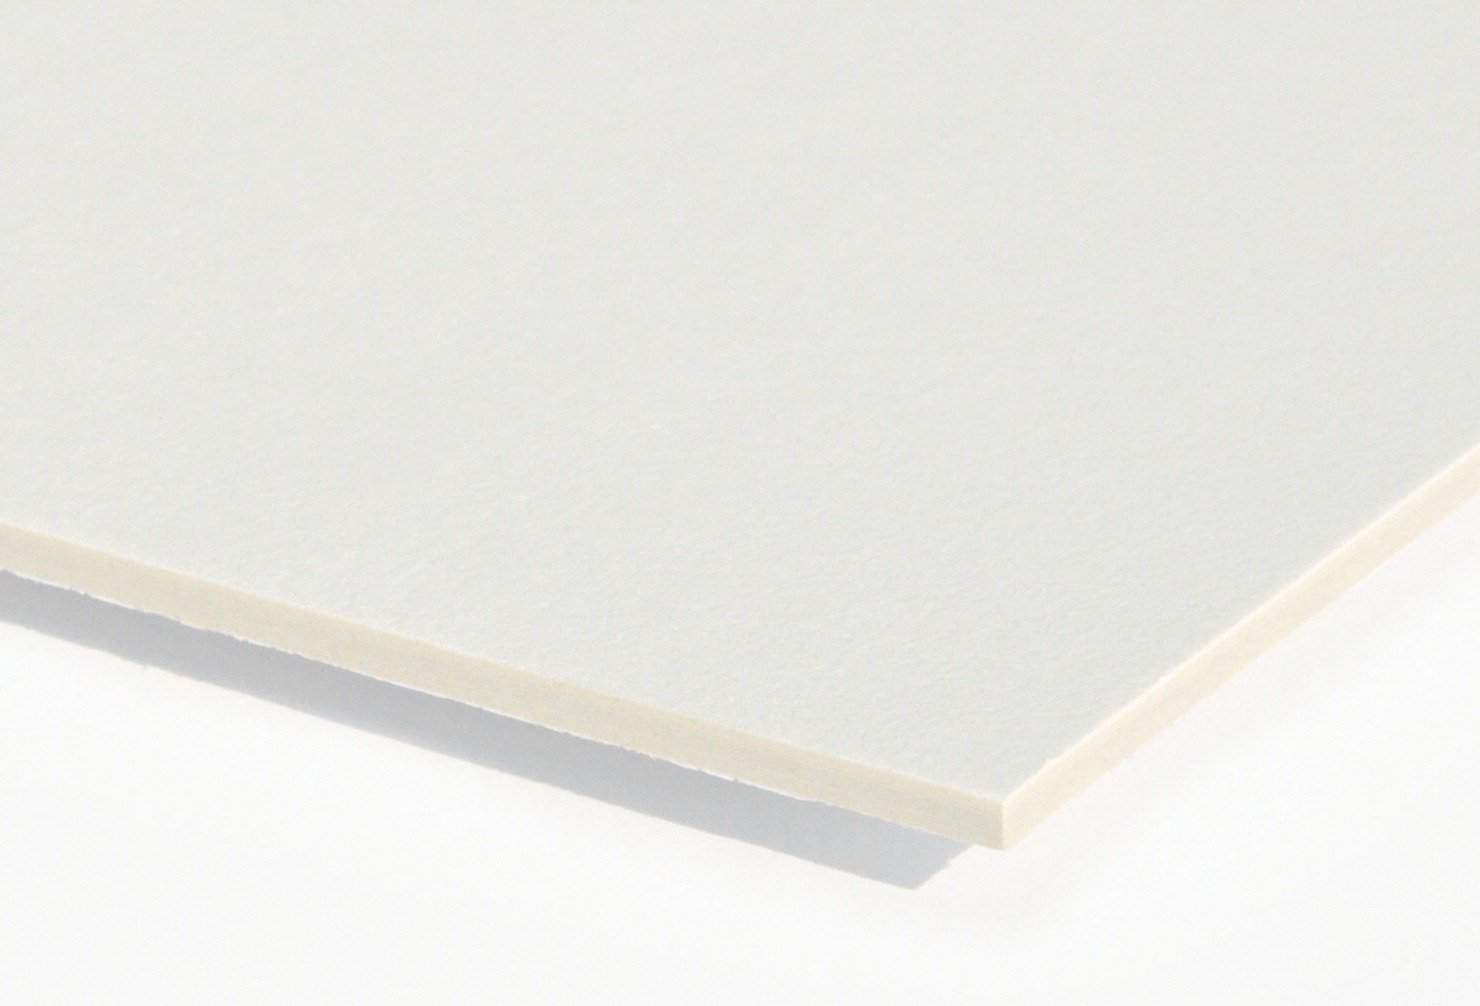 Crescent 114 Extra-Heavy Weight Cold Press Watercolor Board, 20 x 30 Inches, Case of 15